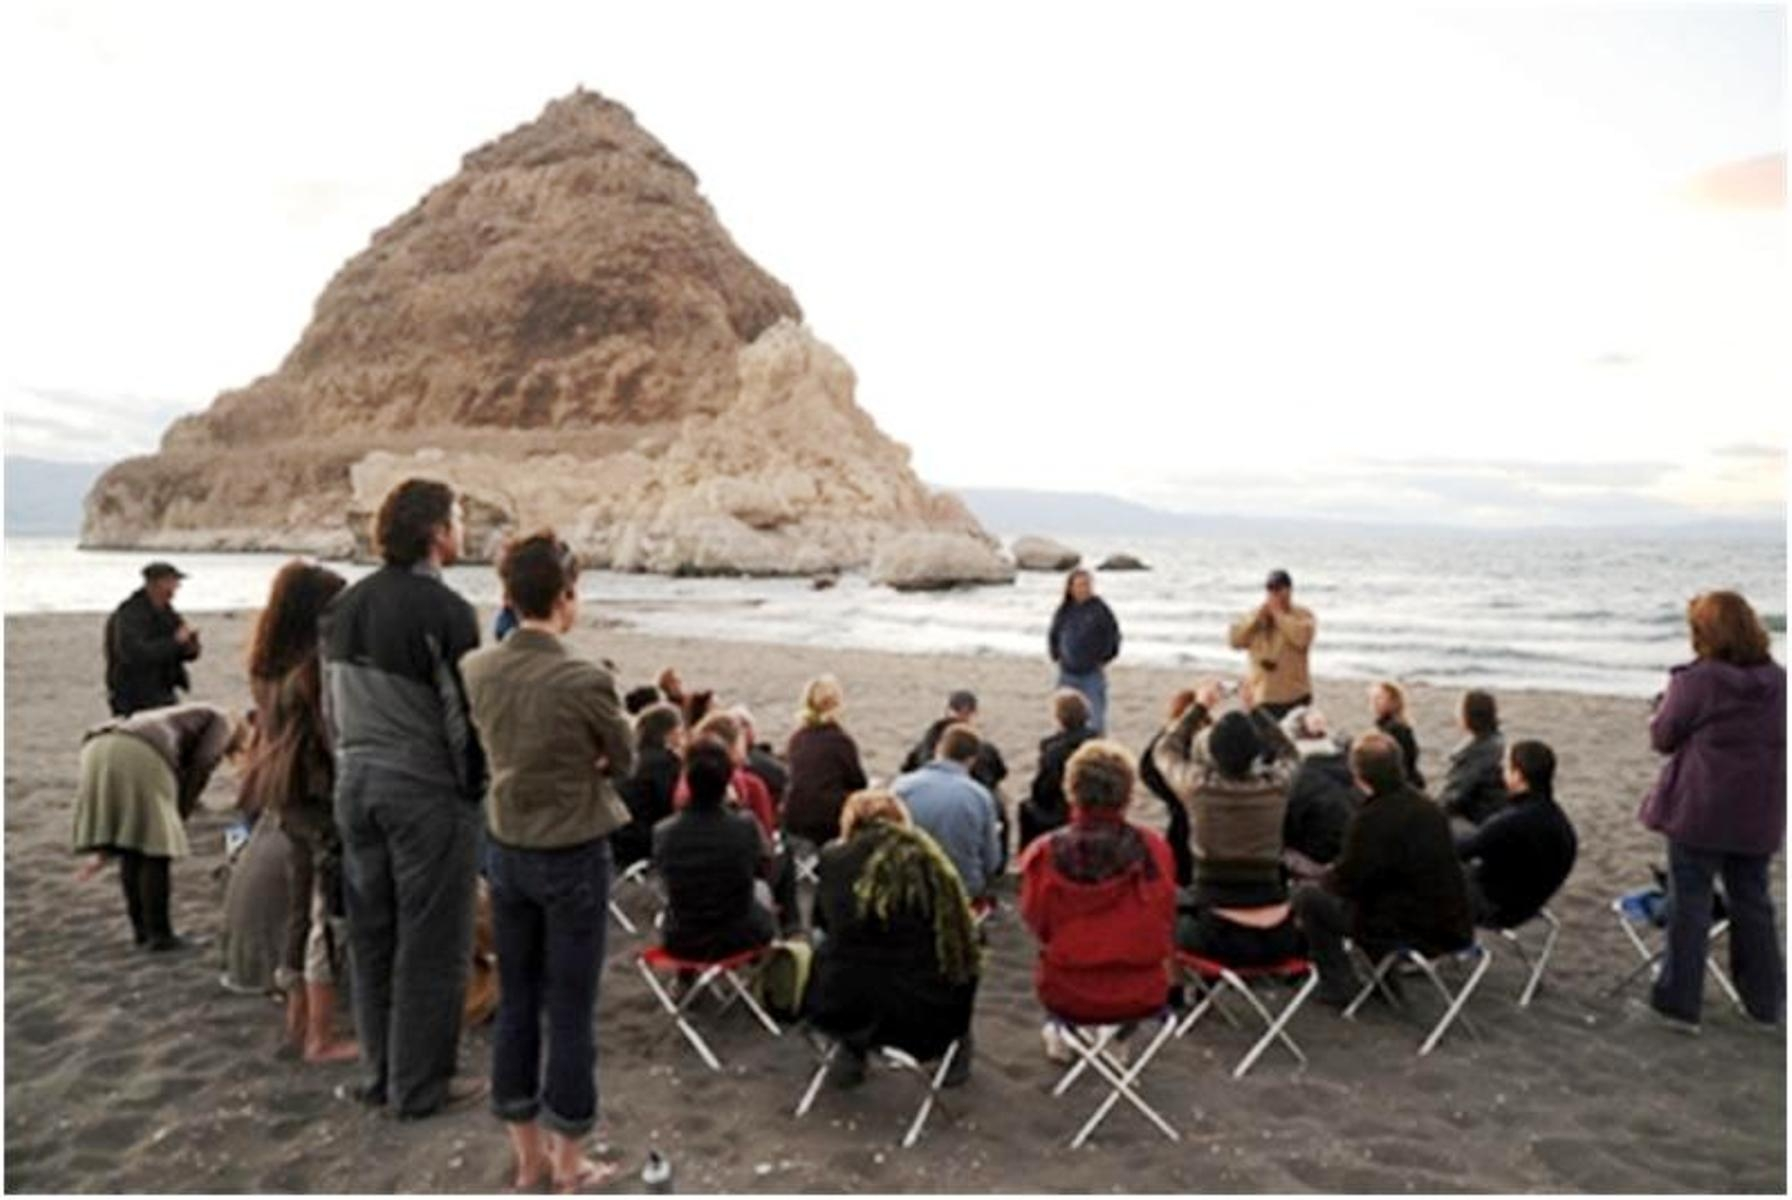 Tribal members telling stories on the shore of Pyramid Lake